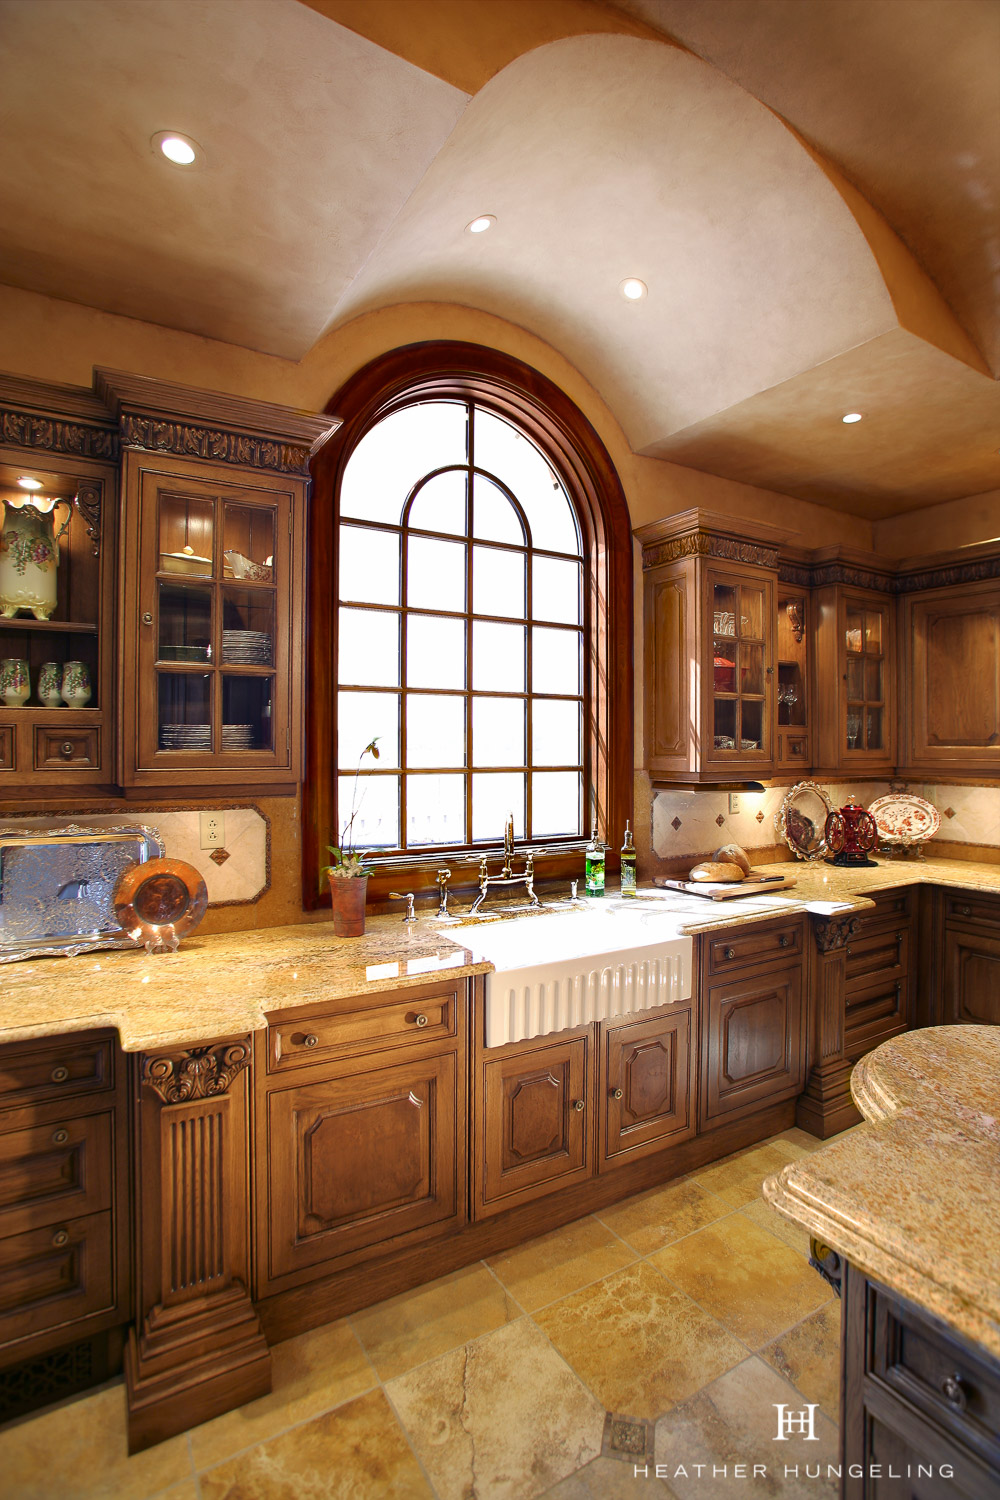 The fluting on this apron front sink maintains the elegance of the overall kitchen. Clive Christian luxury Tuscan kitchen in French Oak.